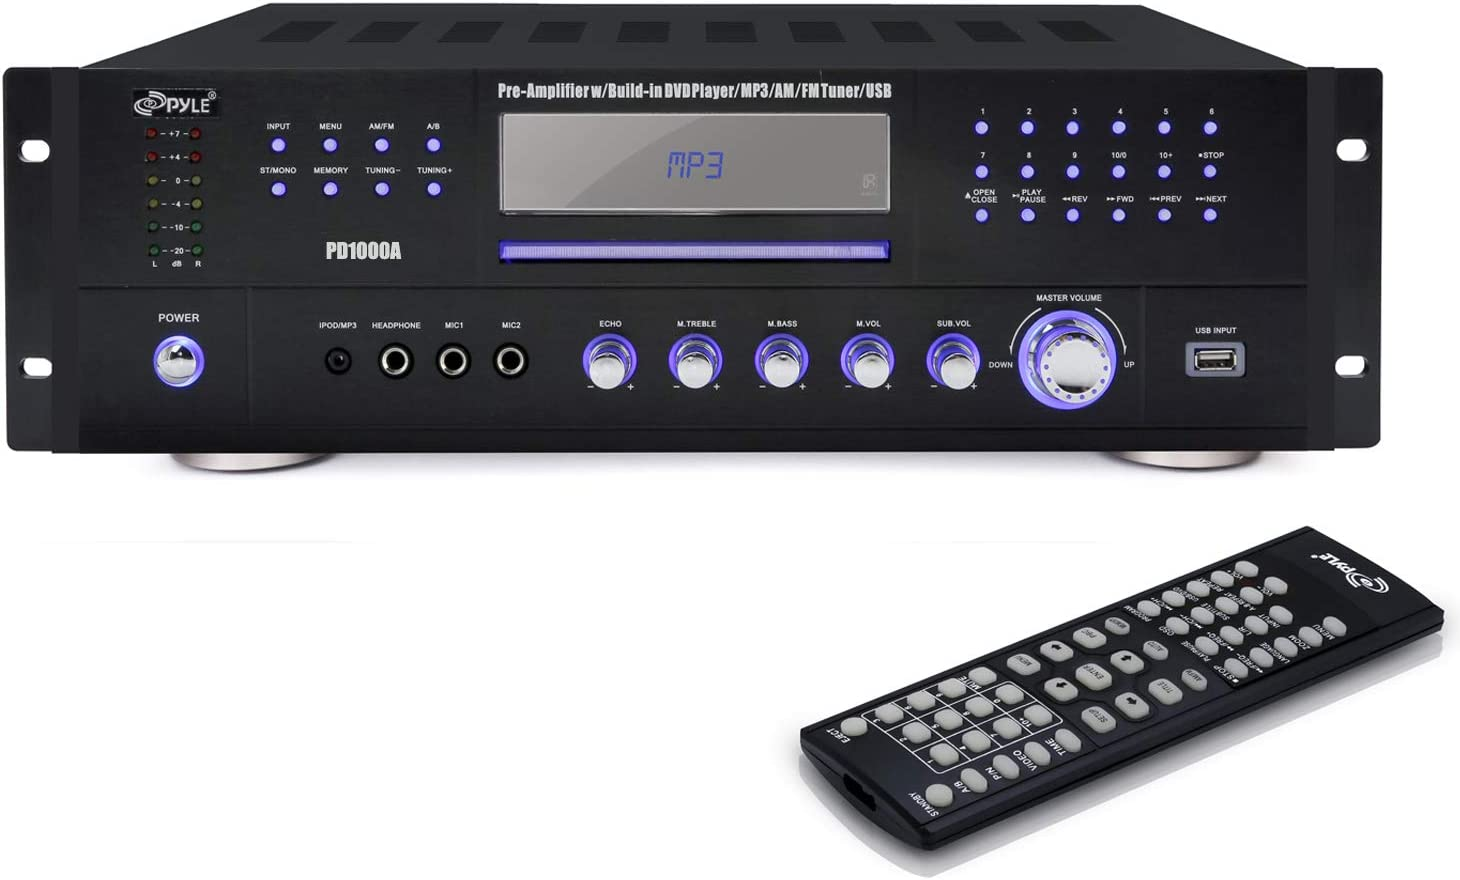 4 Channel Pre Amplifier Receiver - 1000 Watt Compact Rack Mount Home Theater Stereo Surround Sound Preamp Receiver W/Audio/Video System, CD/DVD Player, AM/FM Radio, MP3/USB Reader - Pyle PD1000A.5